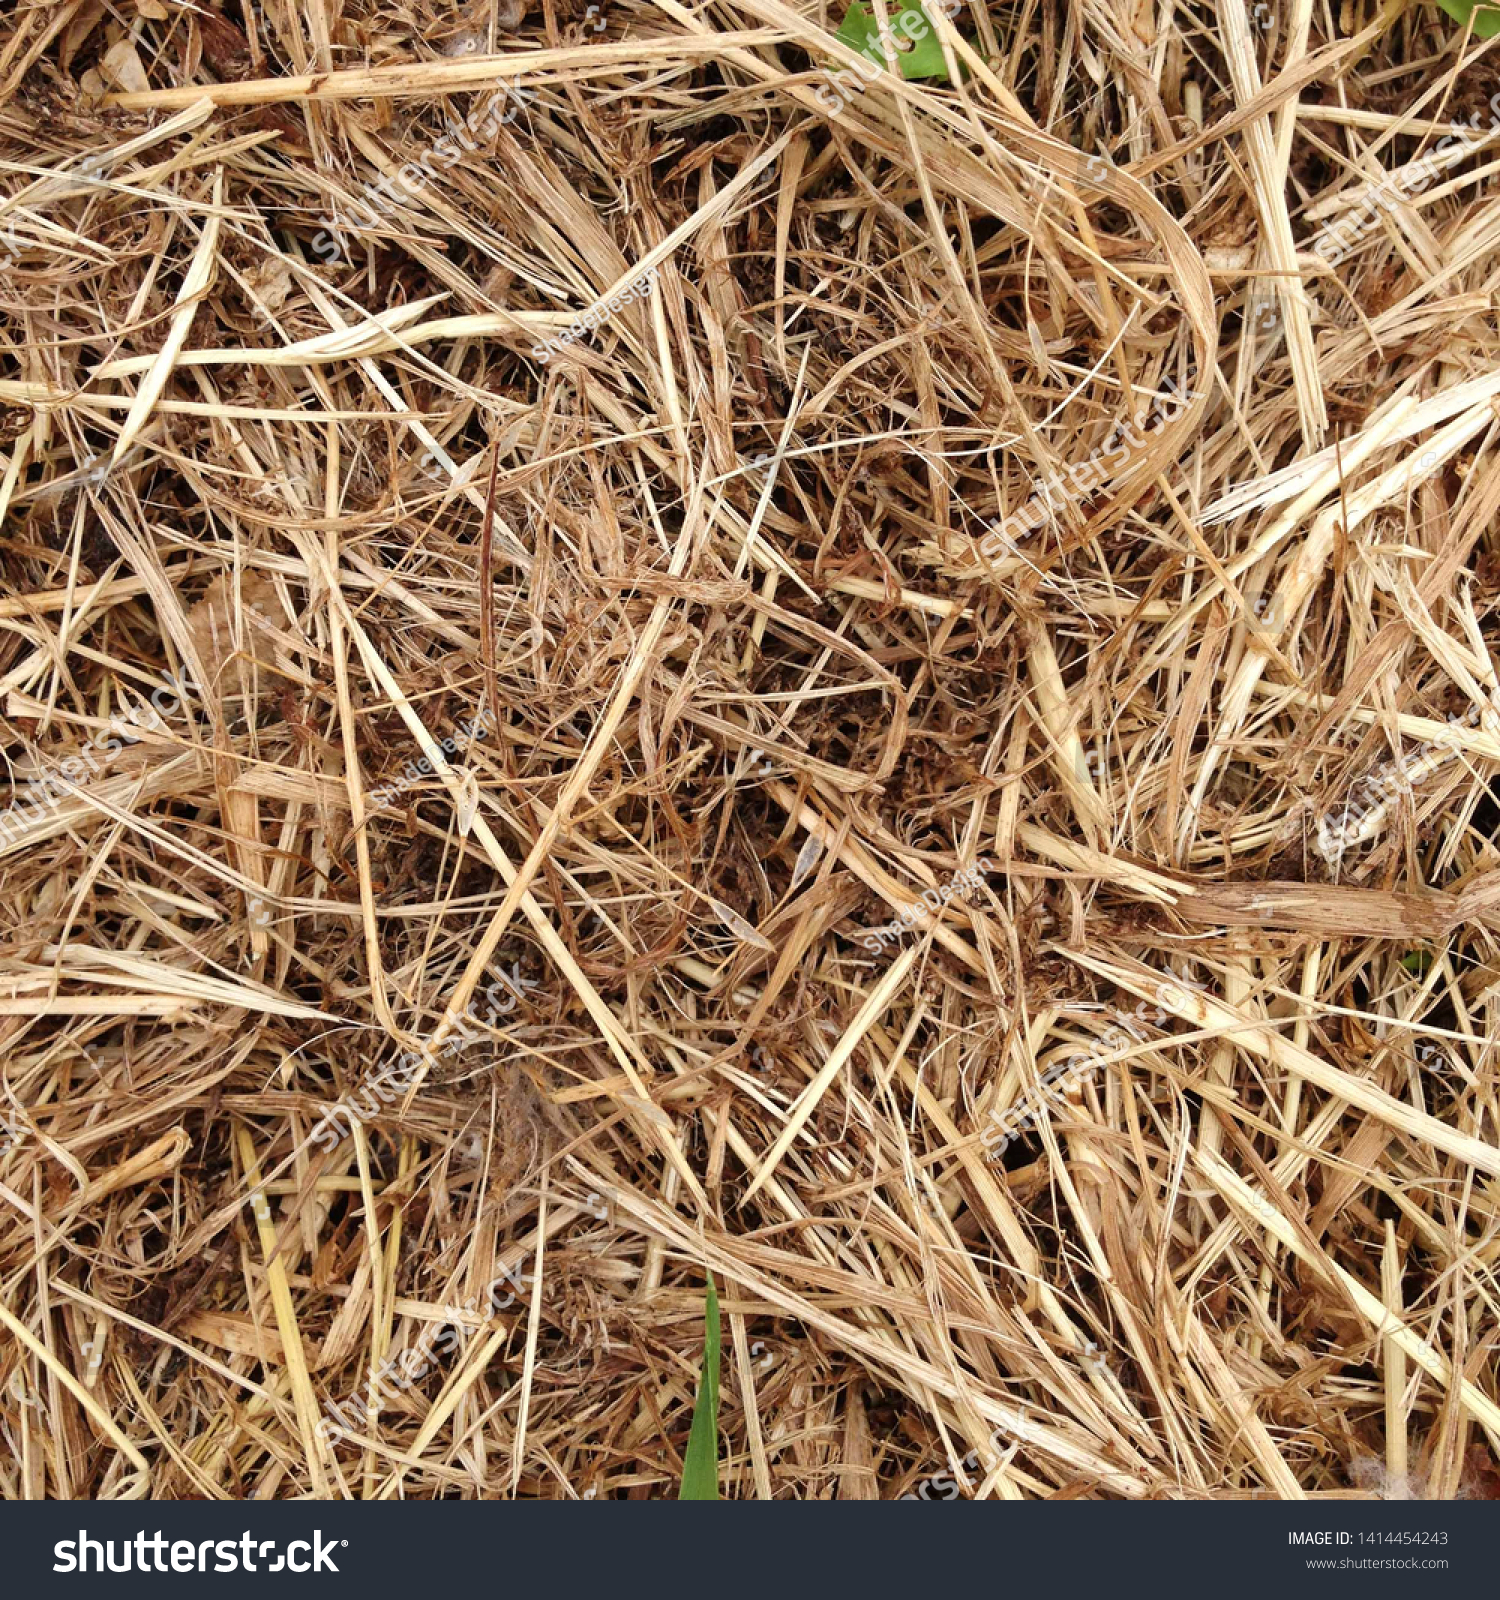 Macro photo nature dry hay. Texture background dry Wheat Straw.